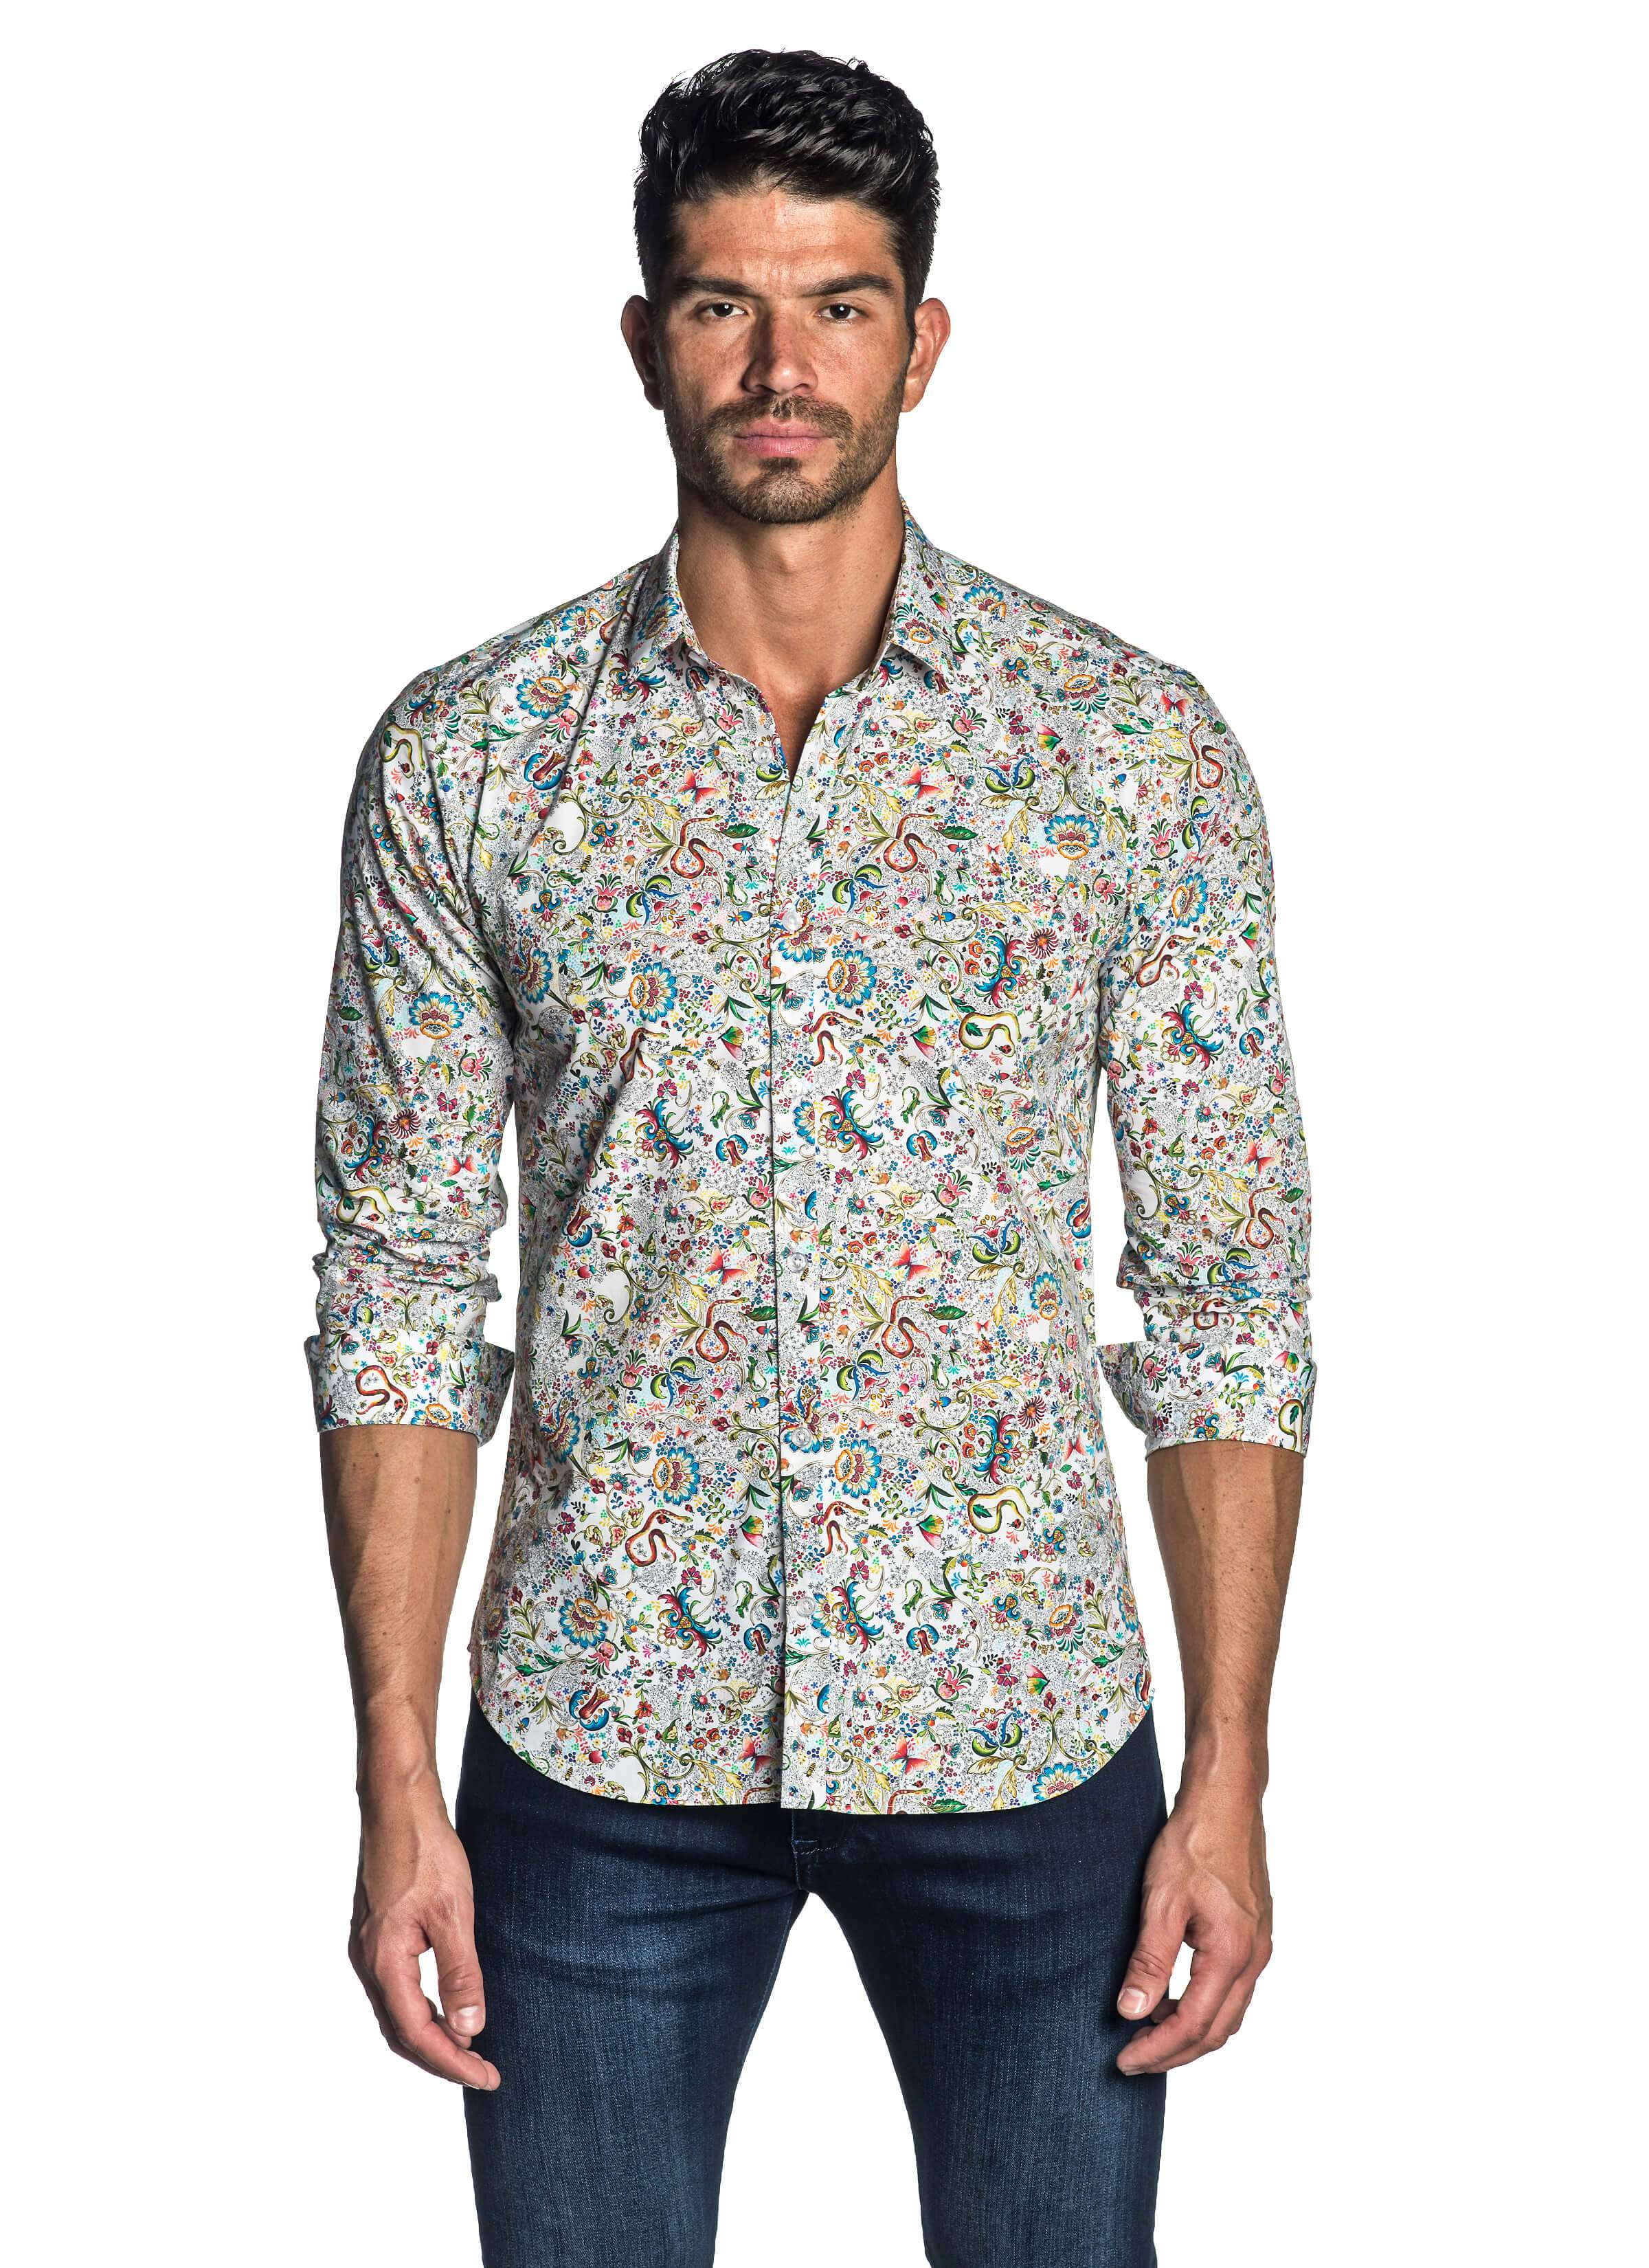 White Multi-colored Floral Degrade Shirt - front AH-T-7063